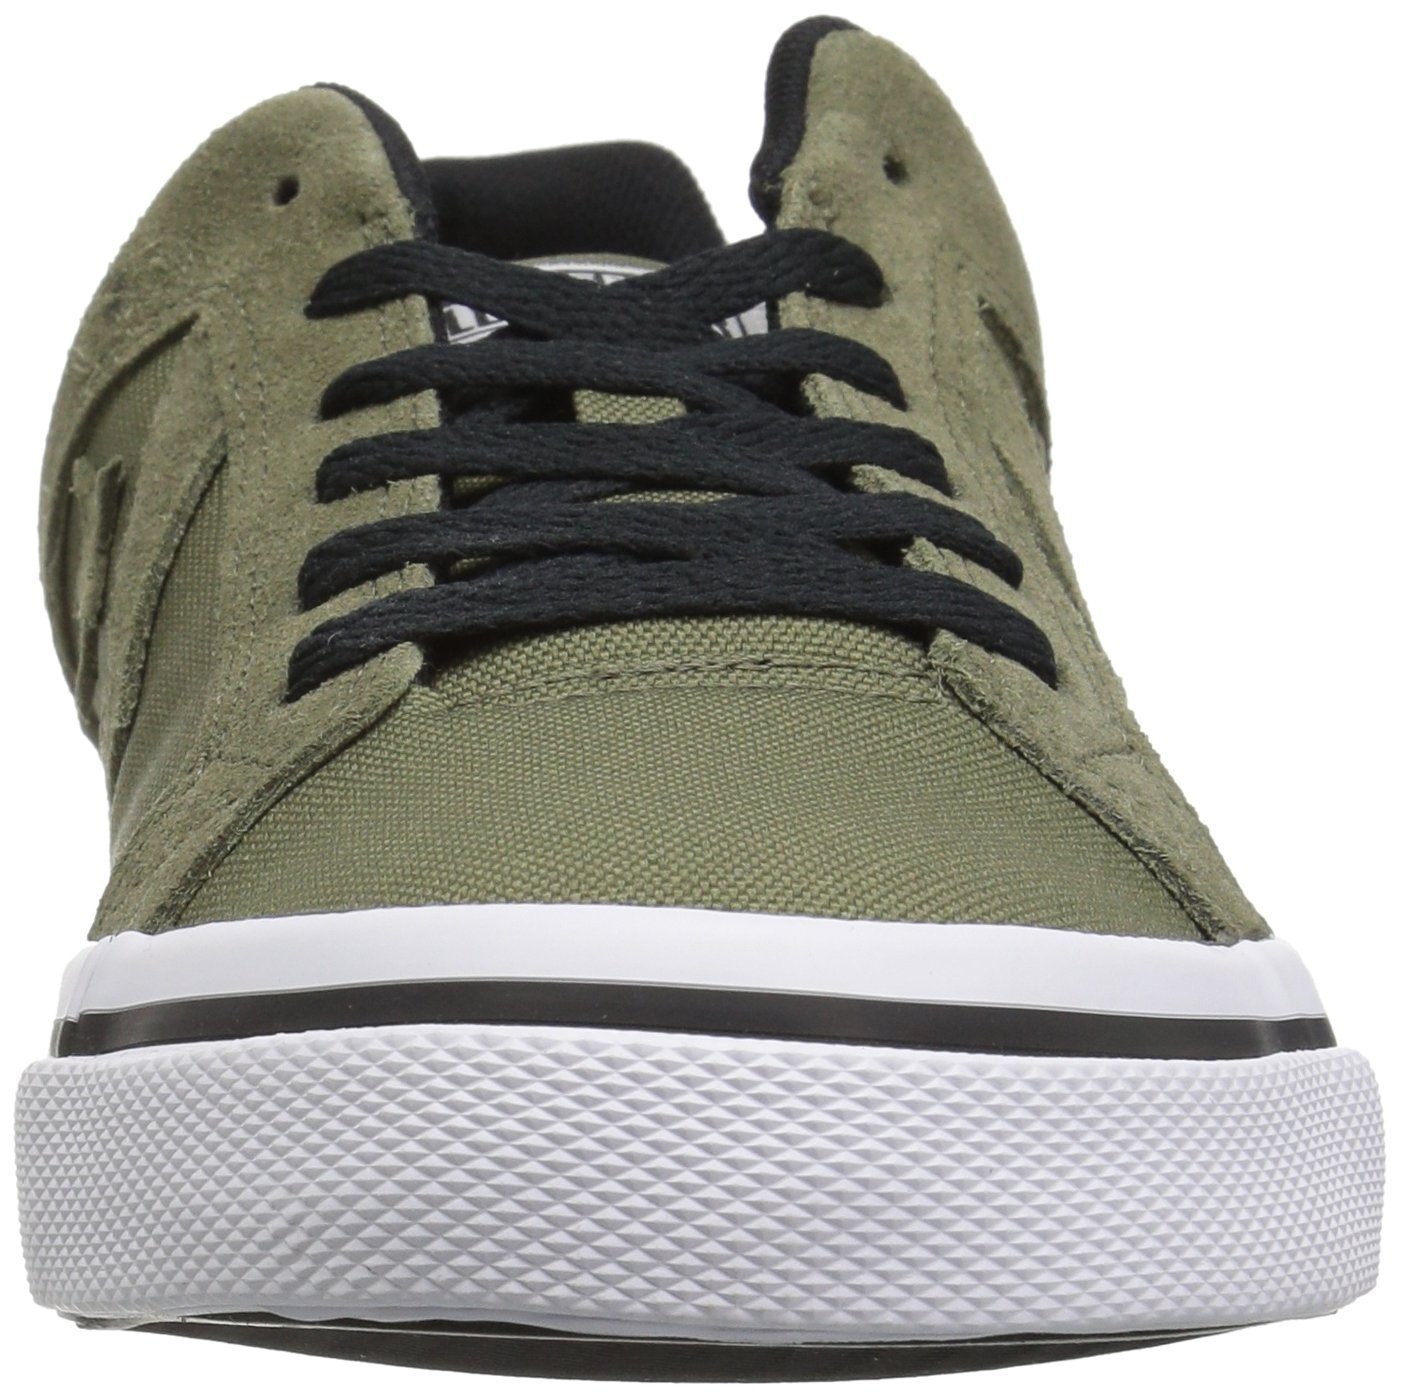 Converse Top El Distrito Canvas Low Top Converse Sneaker B07CQB8M2X 13 M US|Field Surplus/White/Black 15c261